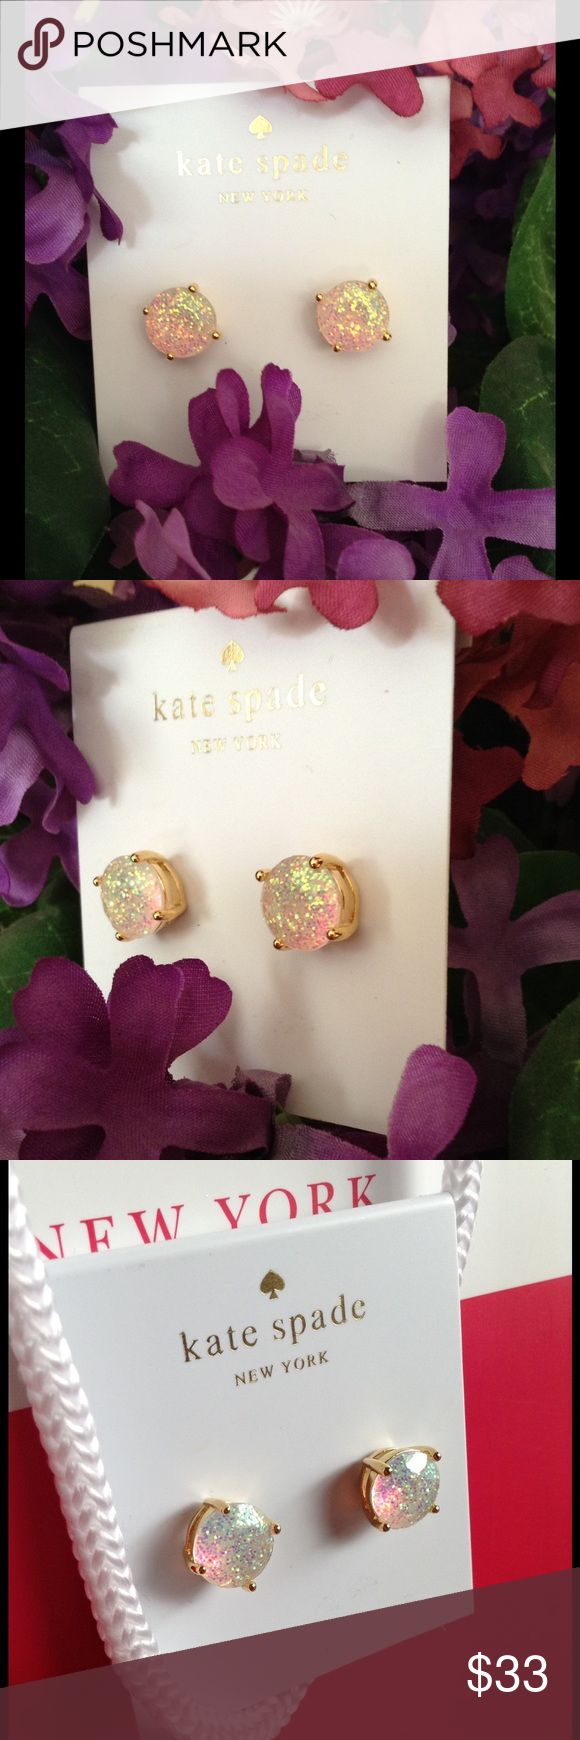 NWT Kate Spade Opal Glitter Earrings. NWT Kate Spade Opal Glitter Earrings. 12kt Gold Plated with Glitter Infused Epoxy Stones. Sparkle at all angles. Kate Spade pouch included.  PRICE IS FIRM!! kate spade Jewelry Earrings